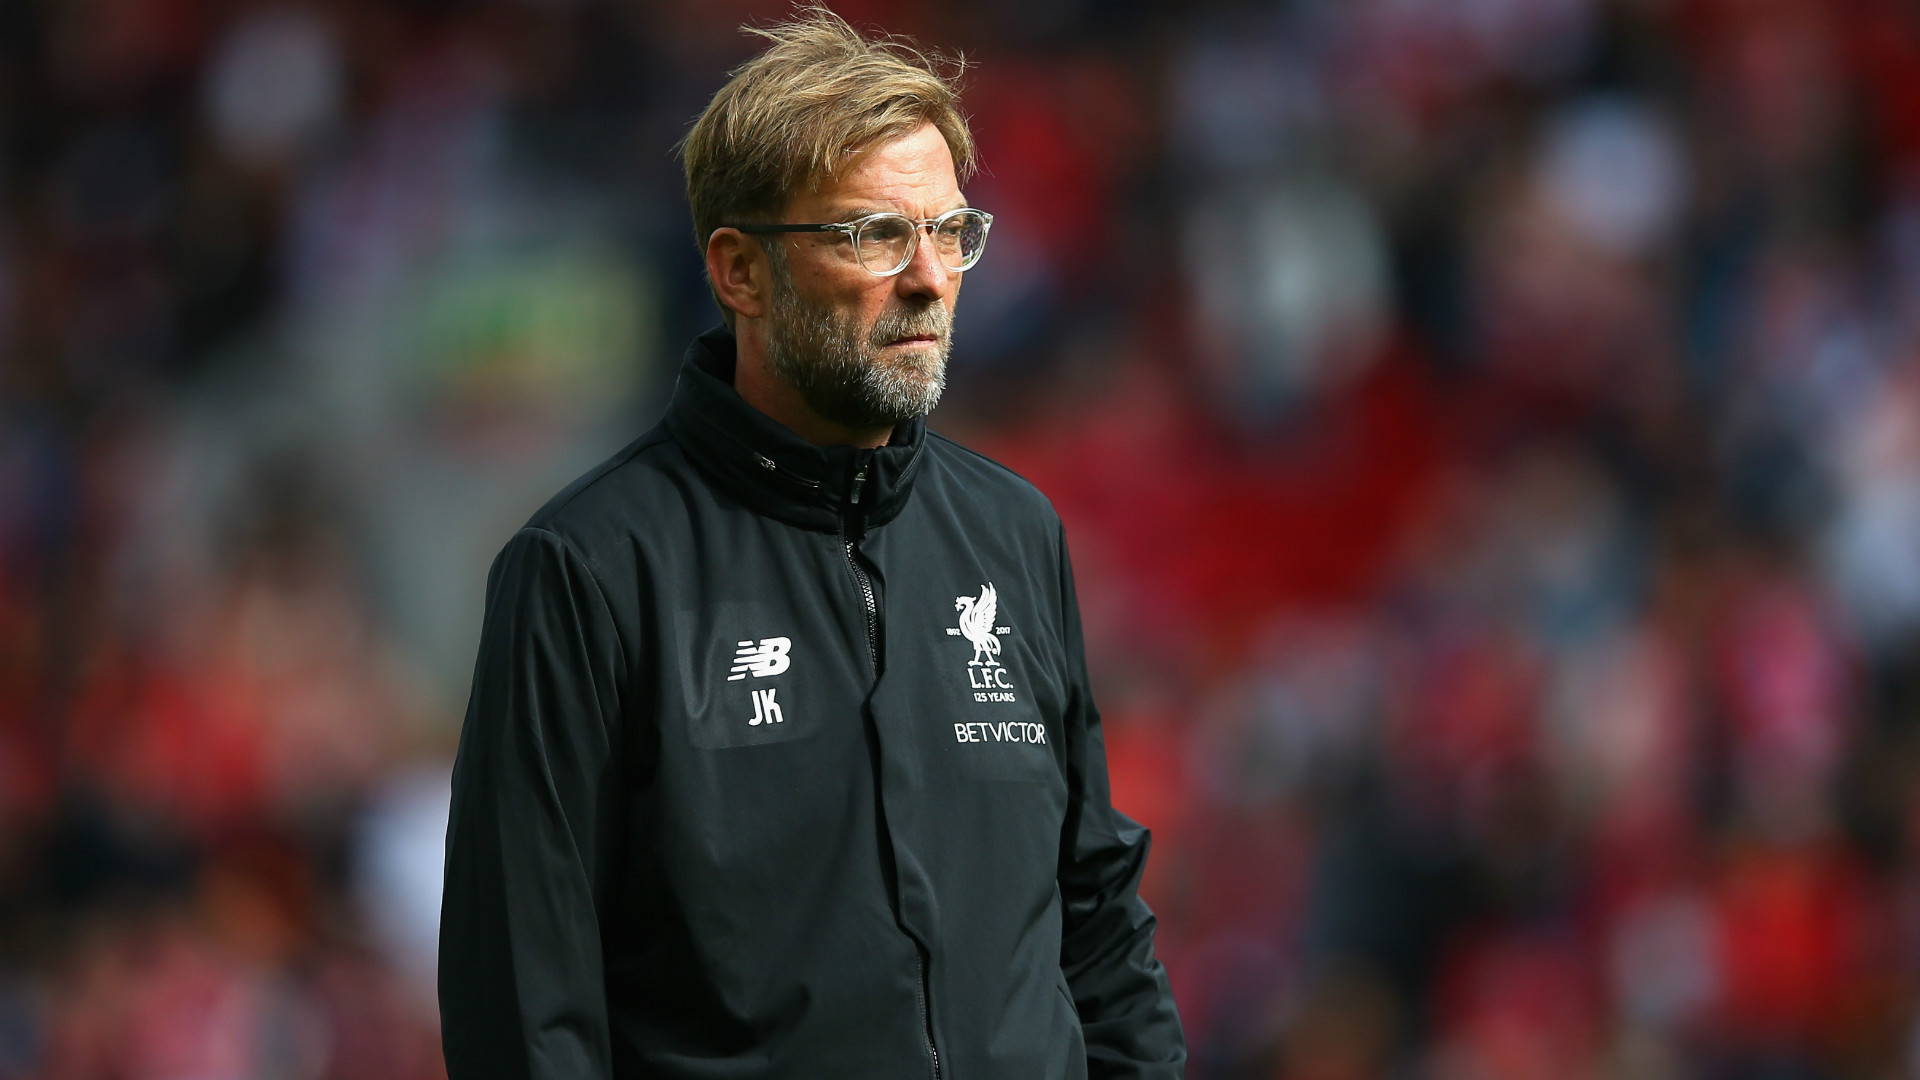 Wonderful Kid - Jurgen Klopp Happy With Liverpool Star's Attitude